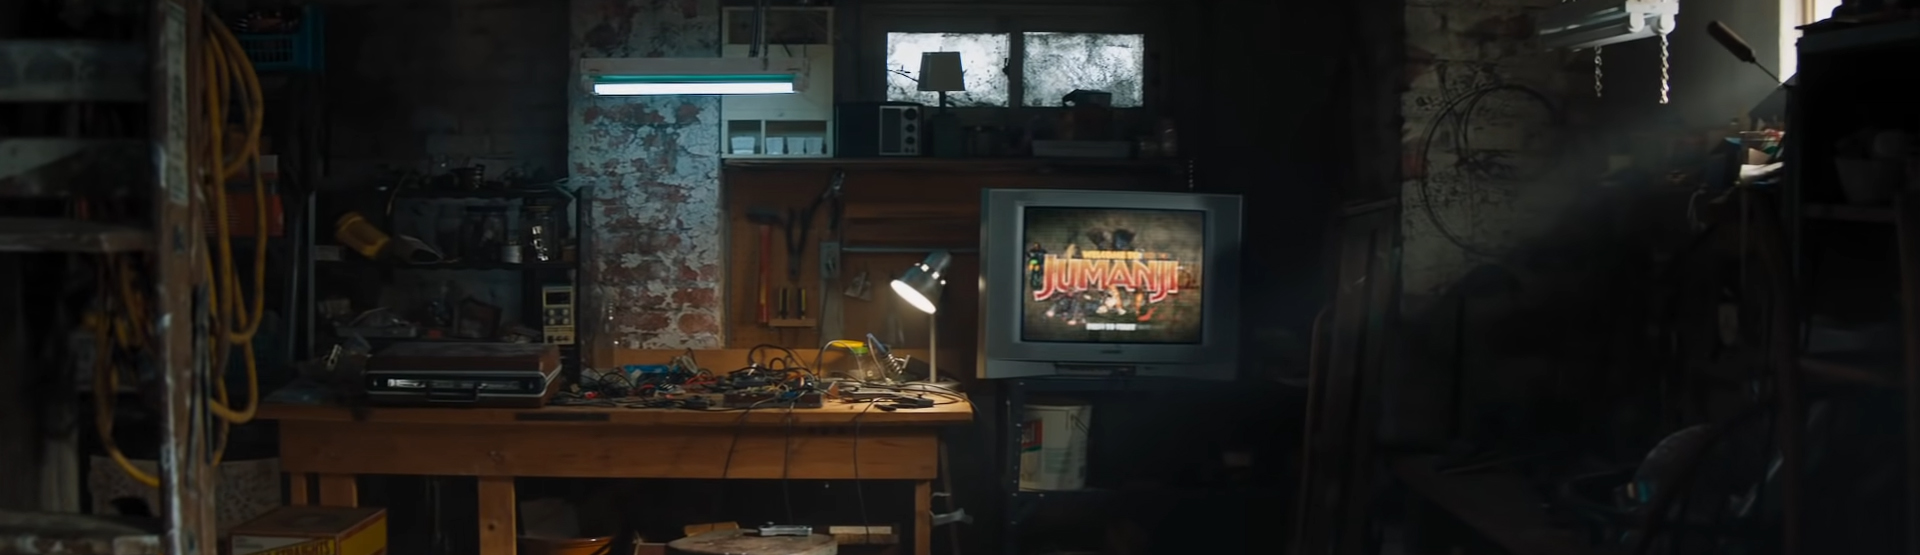 Jumanji: The Next Level. Image Credit: Sony.